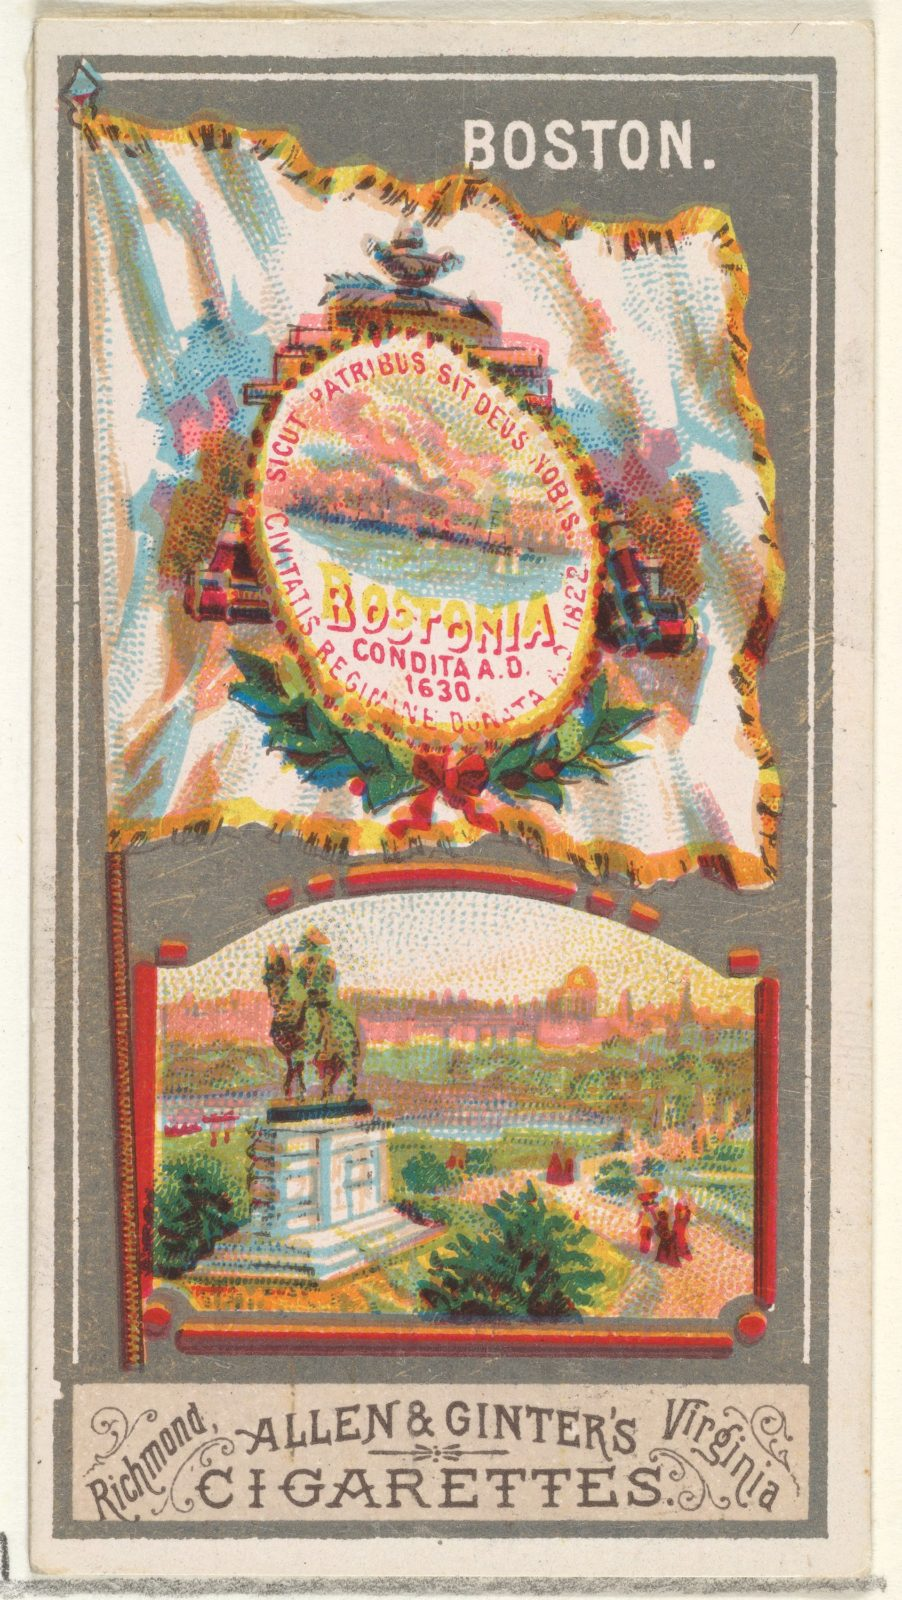 Boston, from the City Flags series (N6) for Allen & Ginter Cigarettes Brands